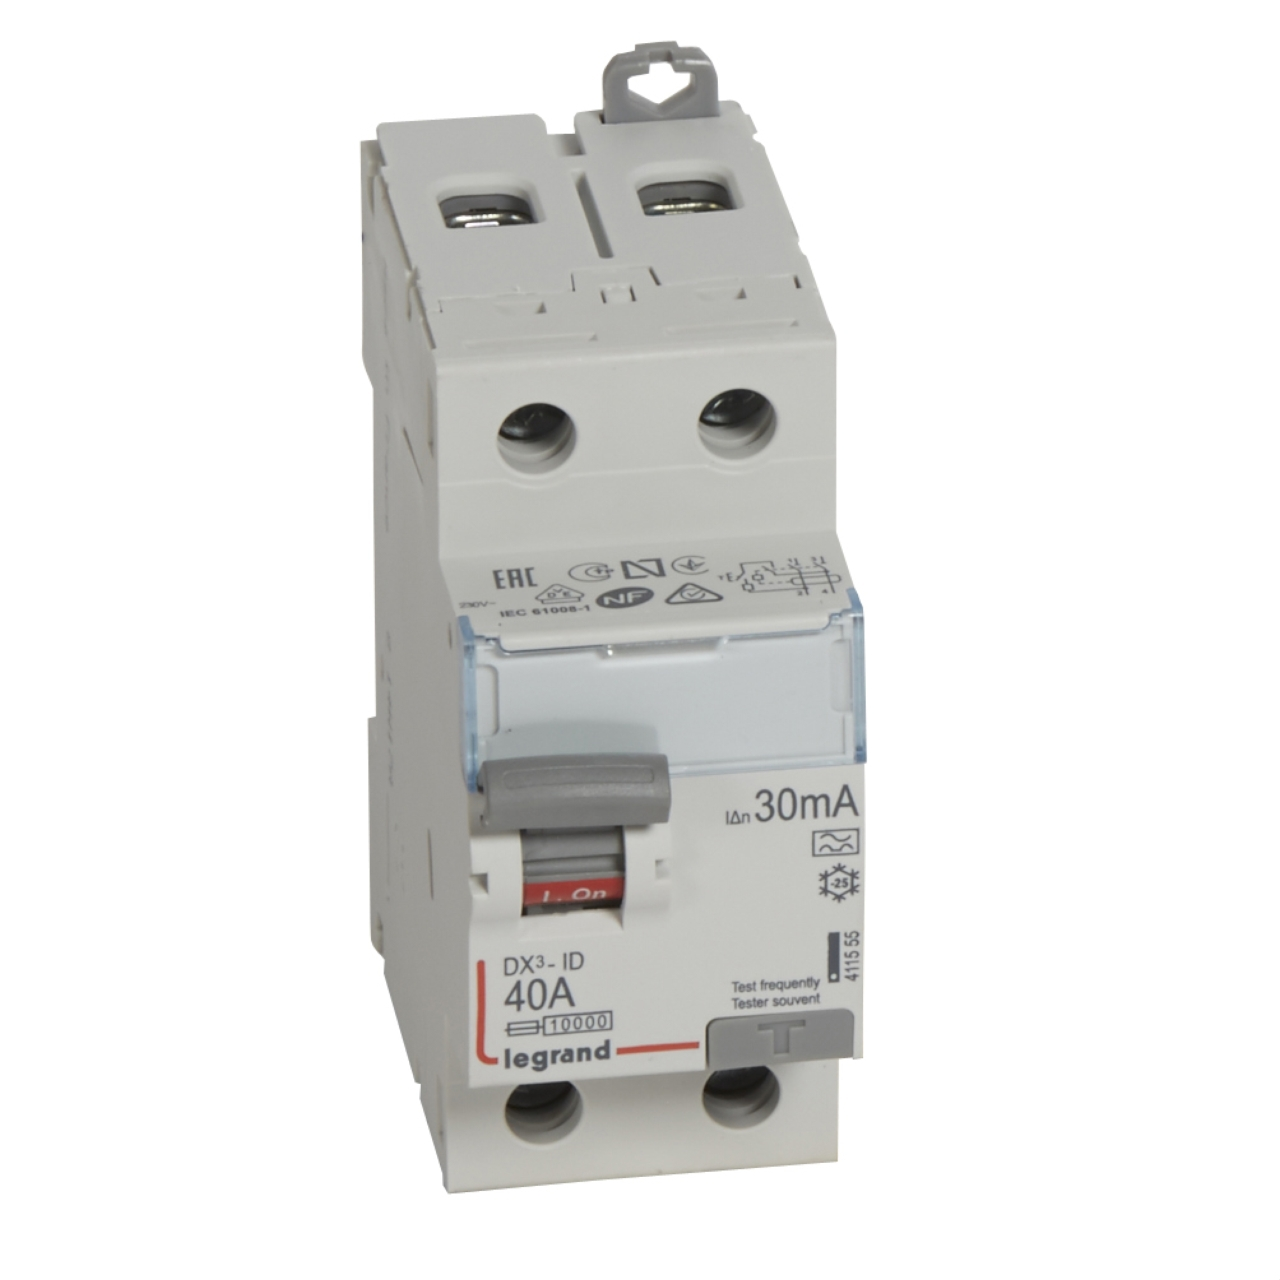 Interrupteur diff rentiel legrand dx3 40a 30ma 2 poles type - Disjoncteur differentiel type a ...